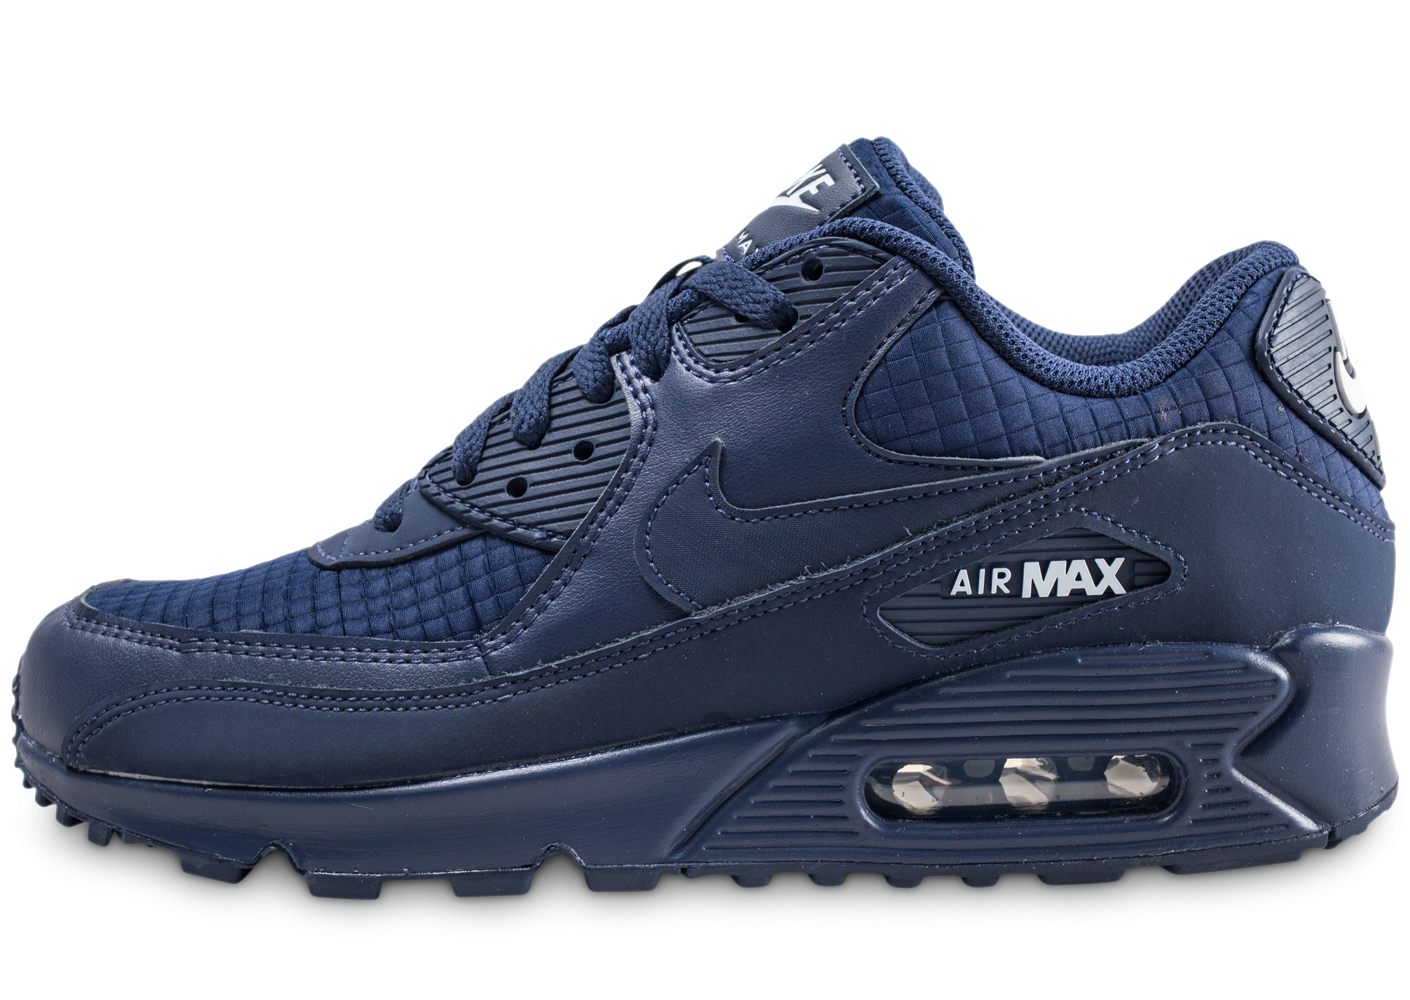 Nike Air Max 90 Essential bleu marine